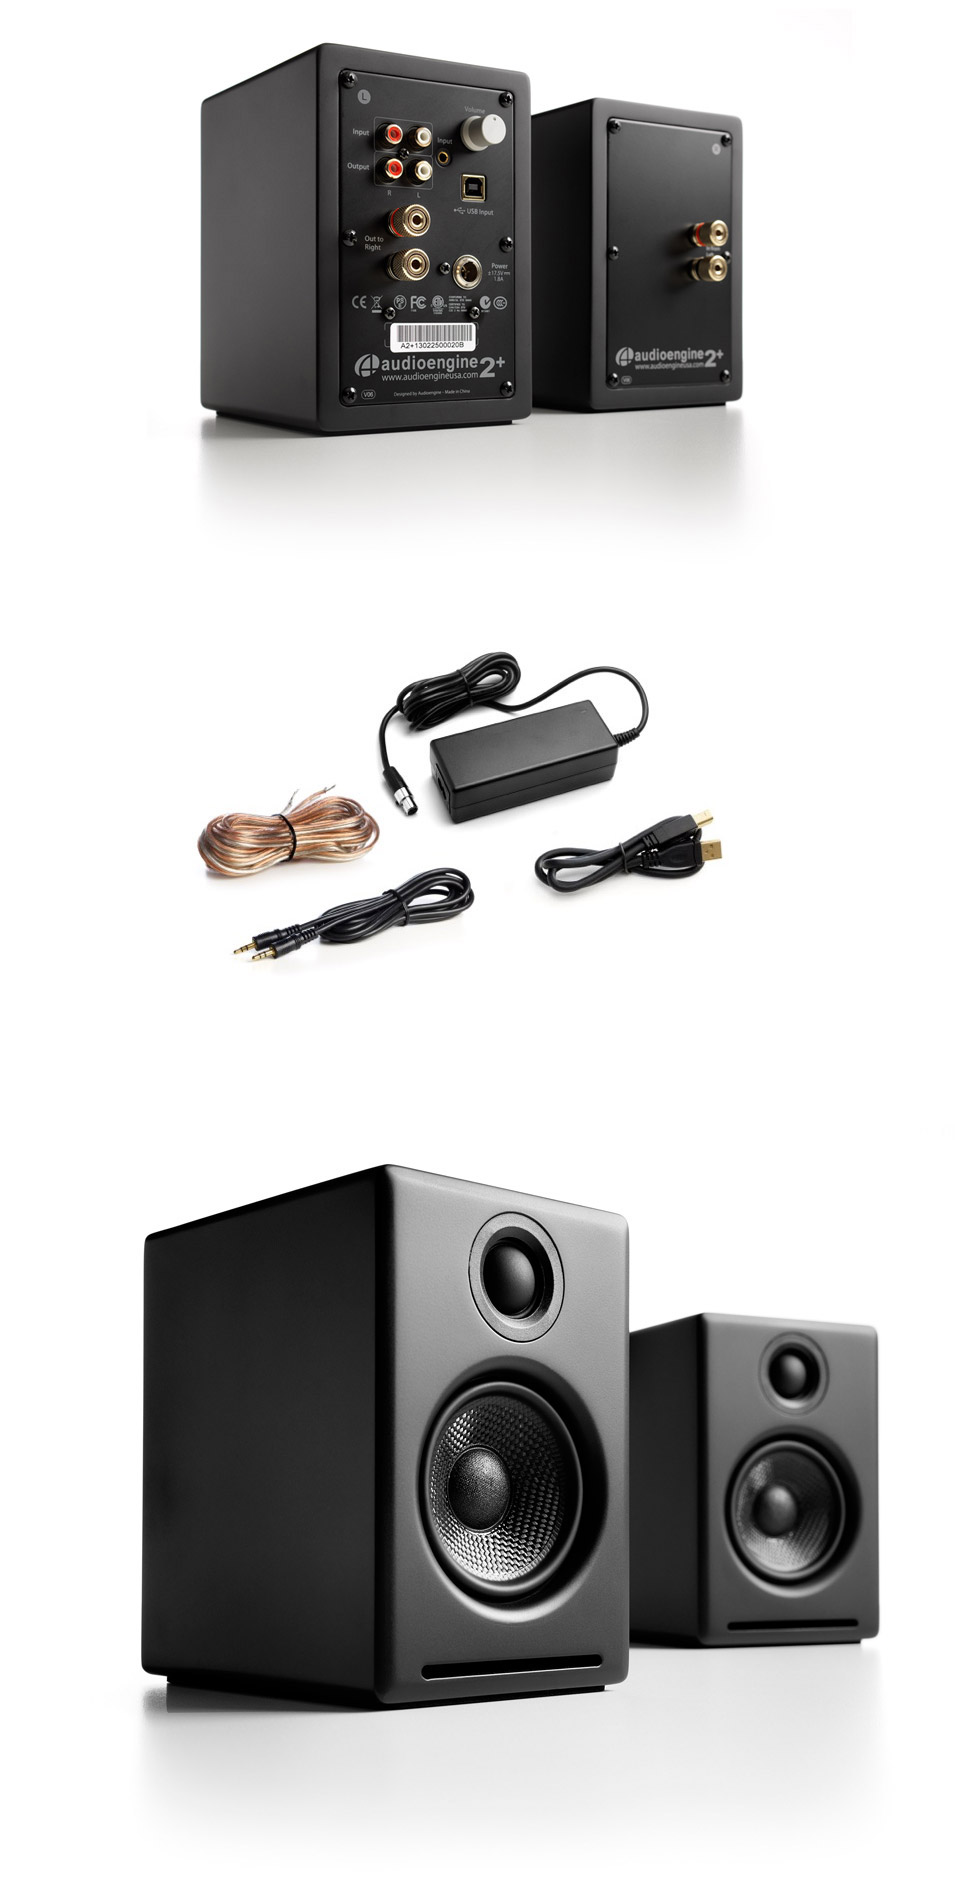 A2 premium powered desktop speakers youtube - Try Watching This Video On Www Youtube Com Or Enable Javascript If It Is Disabled In Your Browser